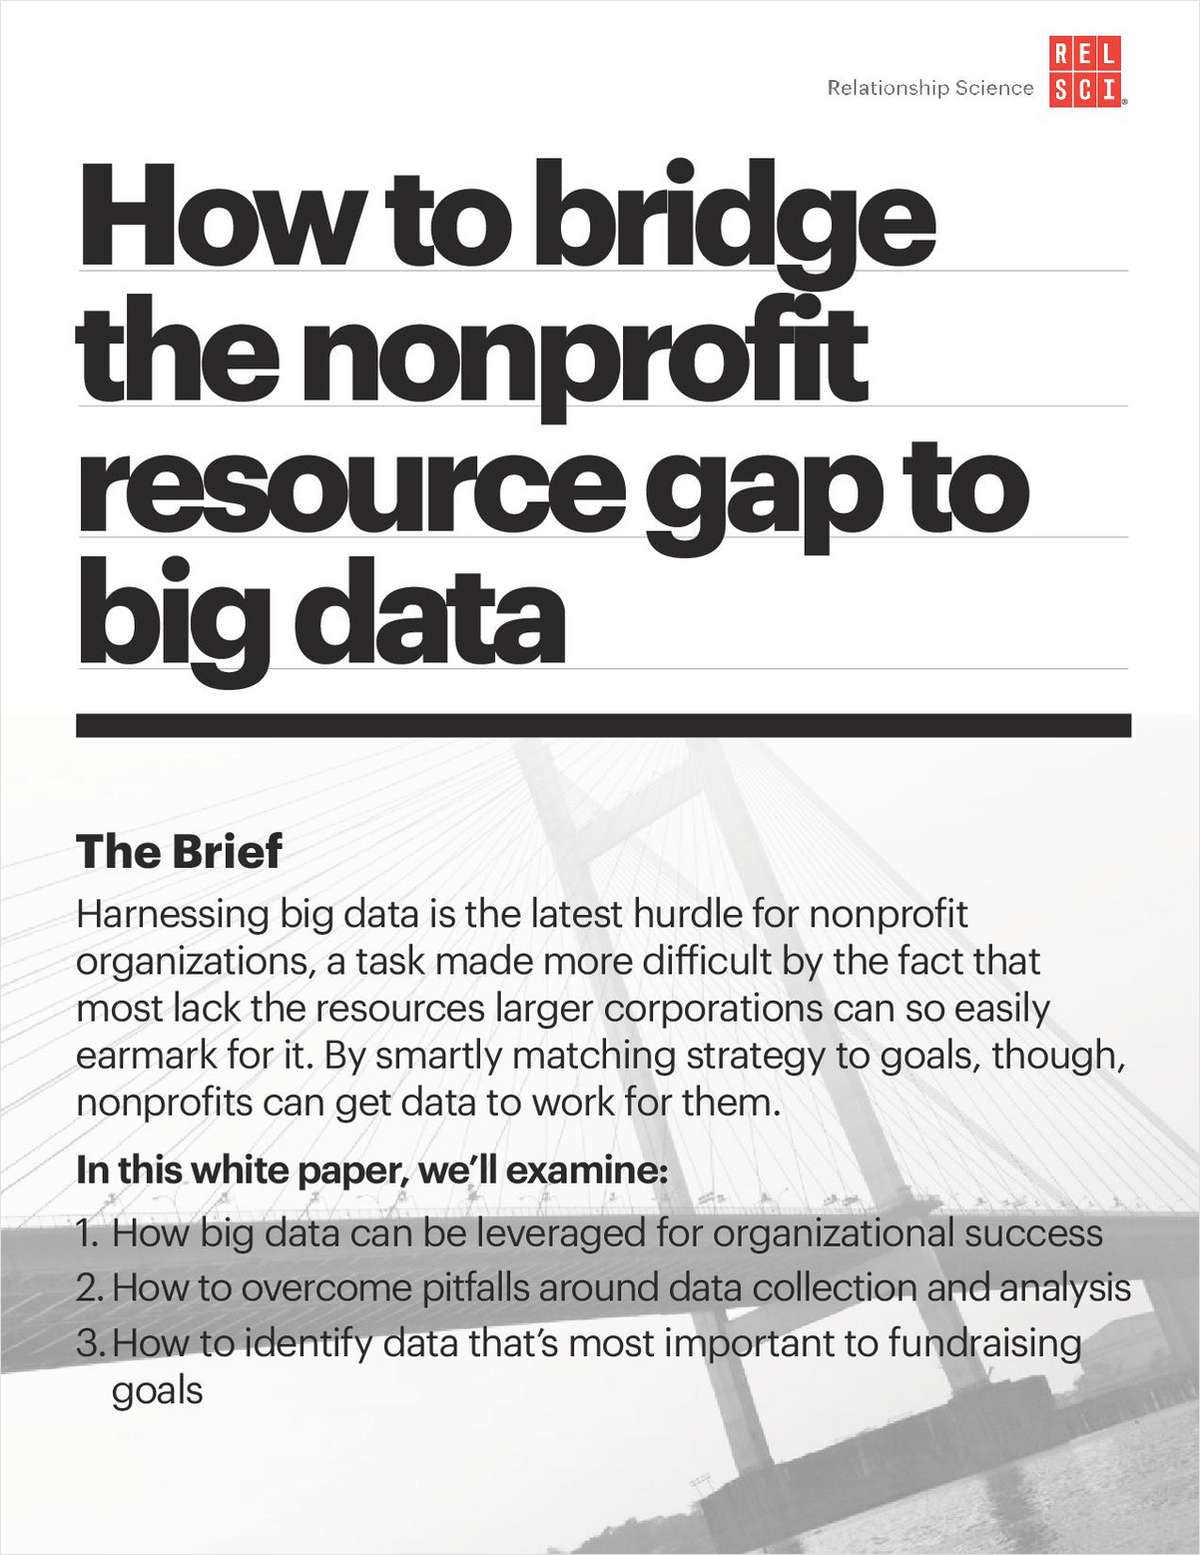 How to Bridge the Nonprofit Resource Gap to Big Data